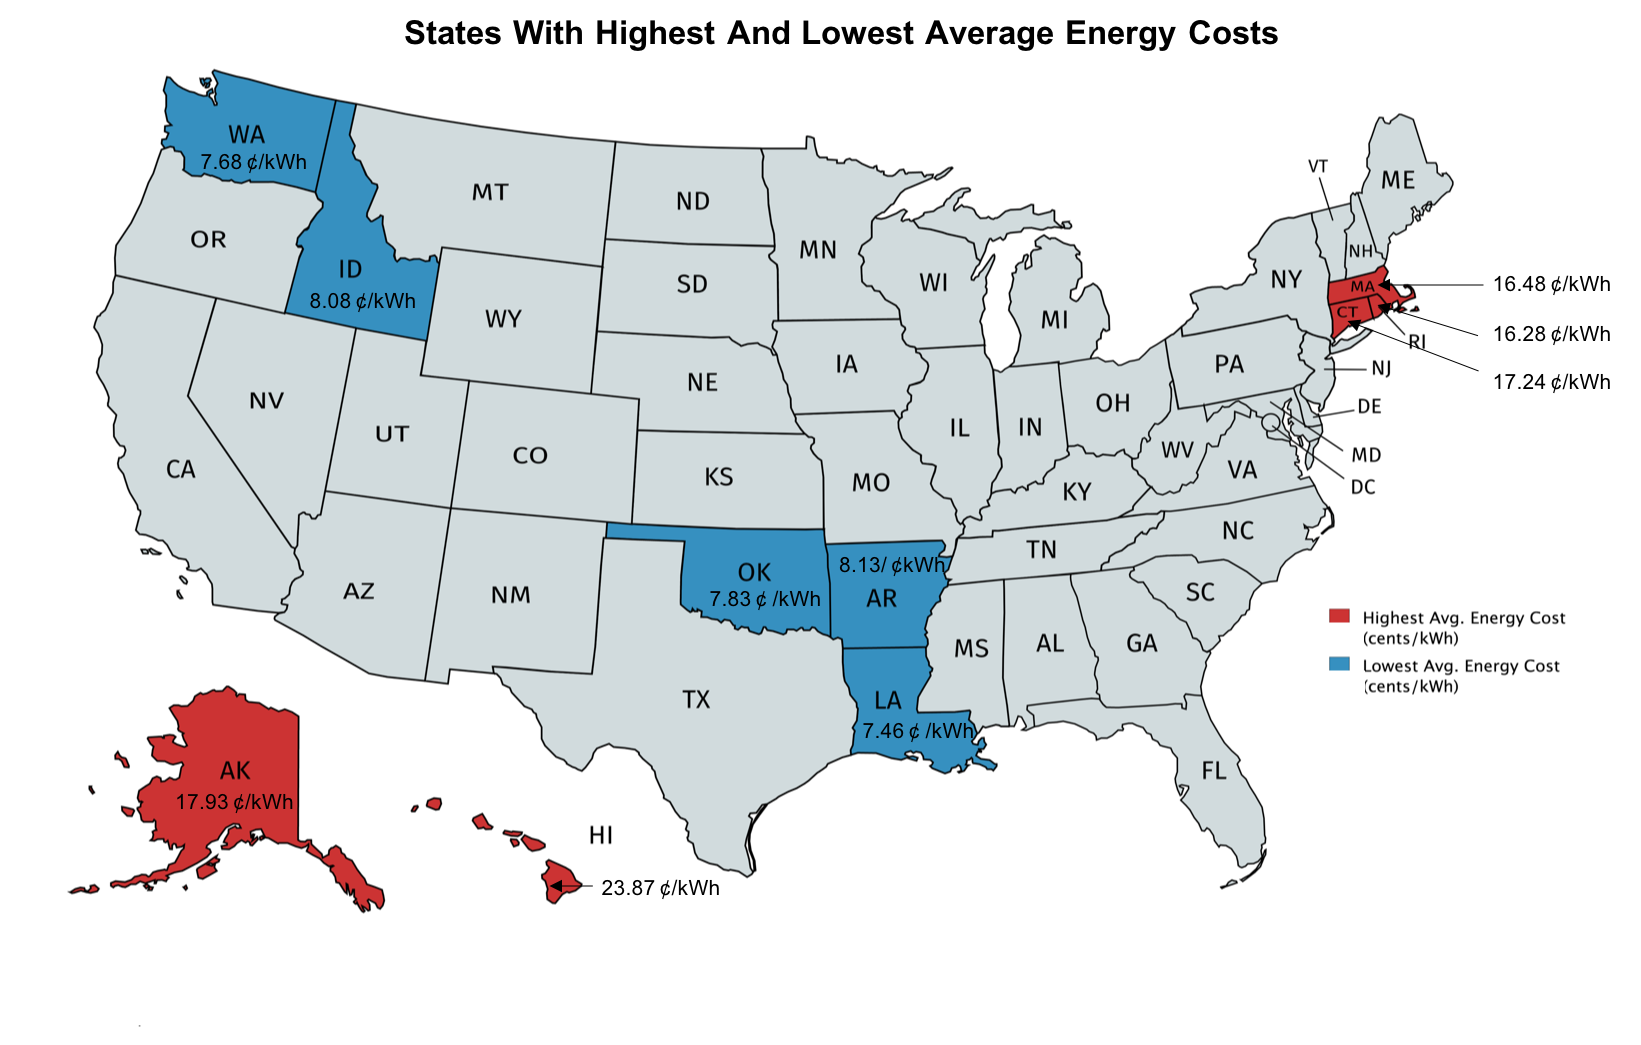 Map of the United States showing Louisiana, Washington, Oklahoma, Idaho and Arkansas in blue to designate lowest average energy costs and Hawaii, Alaska, Connecticut, Massachusetts and Rhode Island in red to designate highest average energy costs.